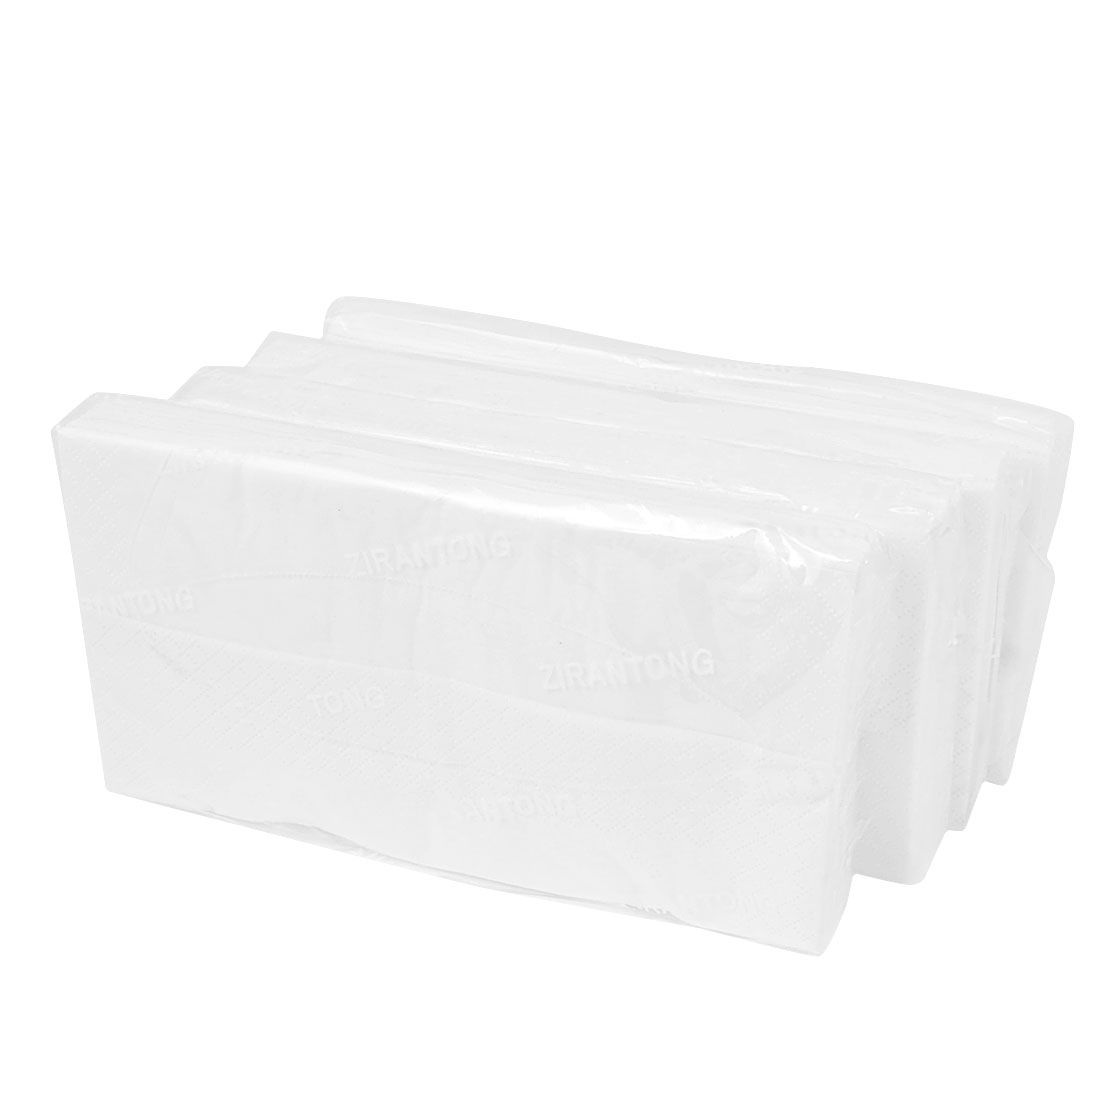 4 Packs Car Auto White Soft Rectangle Facial Cleaning Visor Tissue Napkin Refill